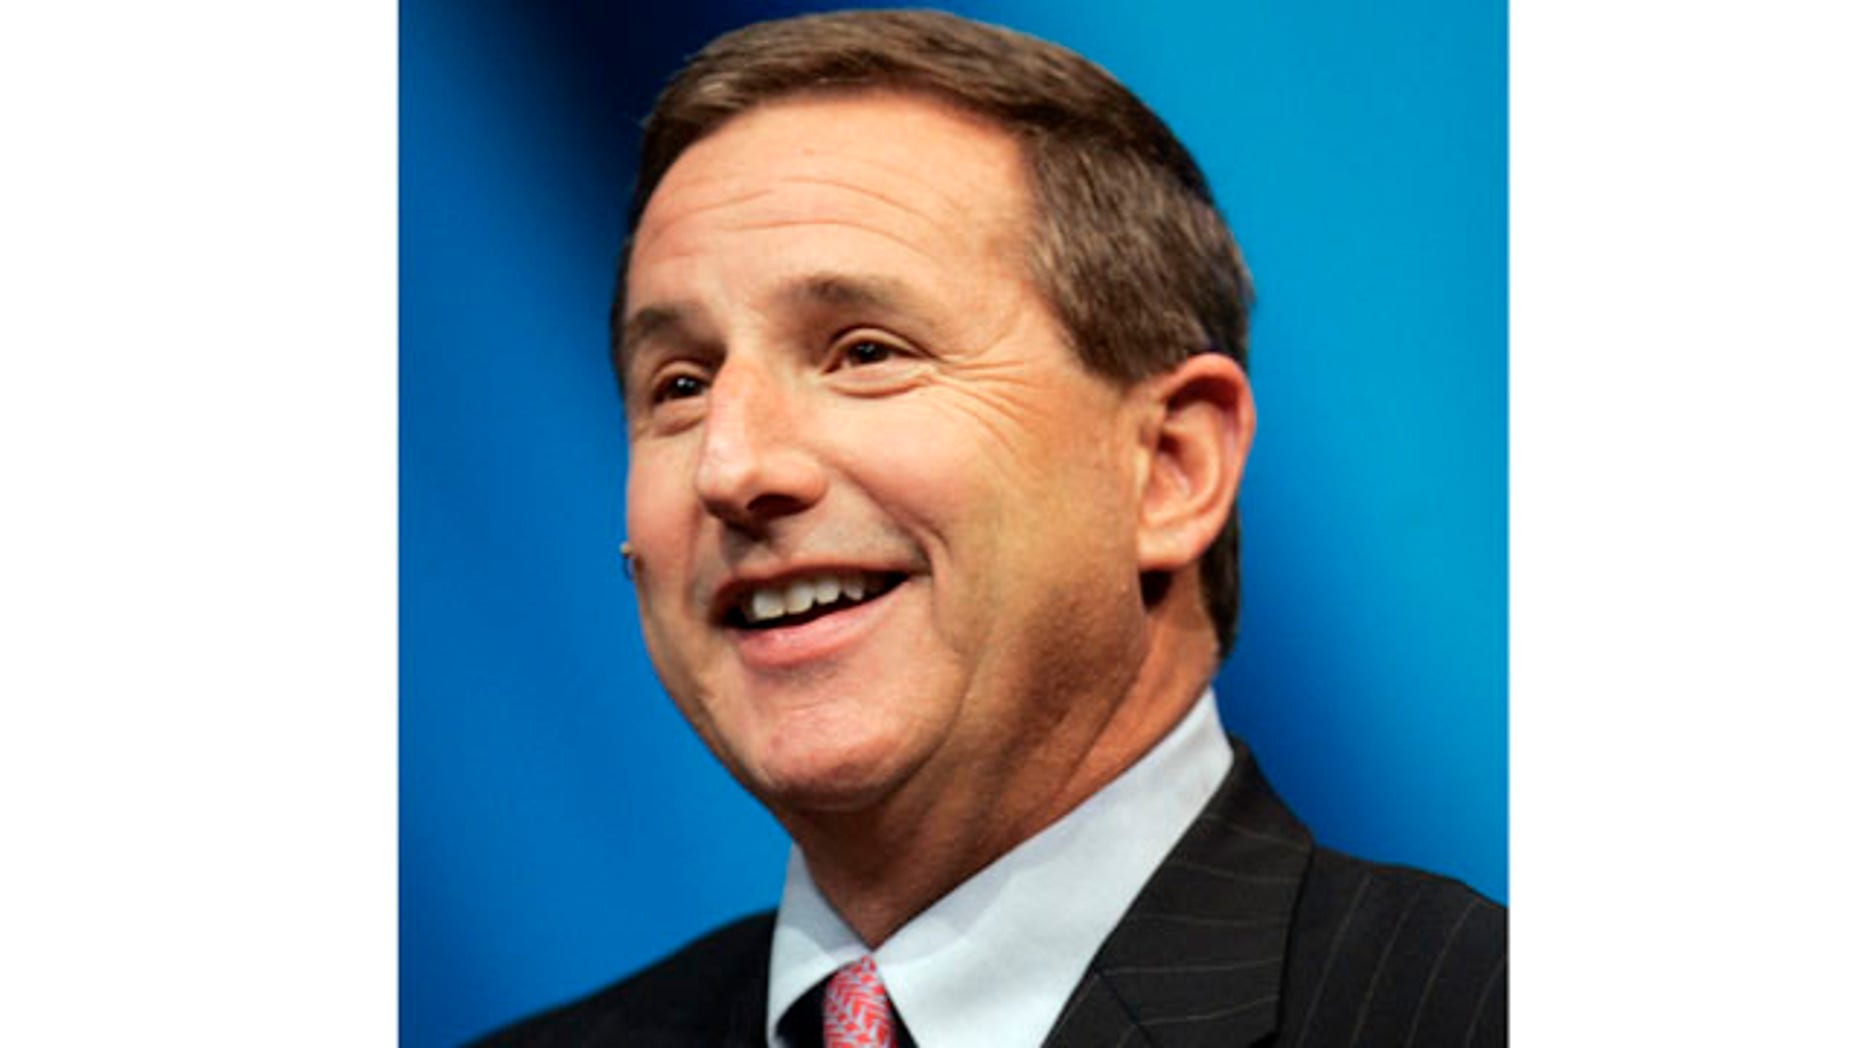 In this , Nov. 12, 2007, file photo, Hewlett Packard Company CEO Mark Hurd speaks during a conference in San Francisco.